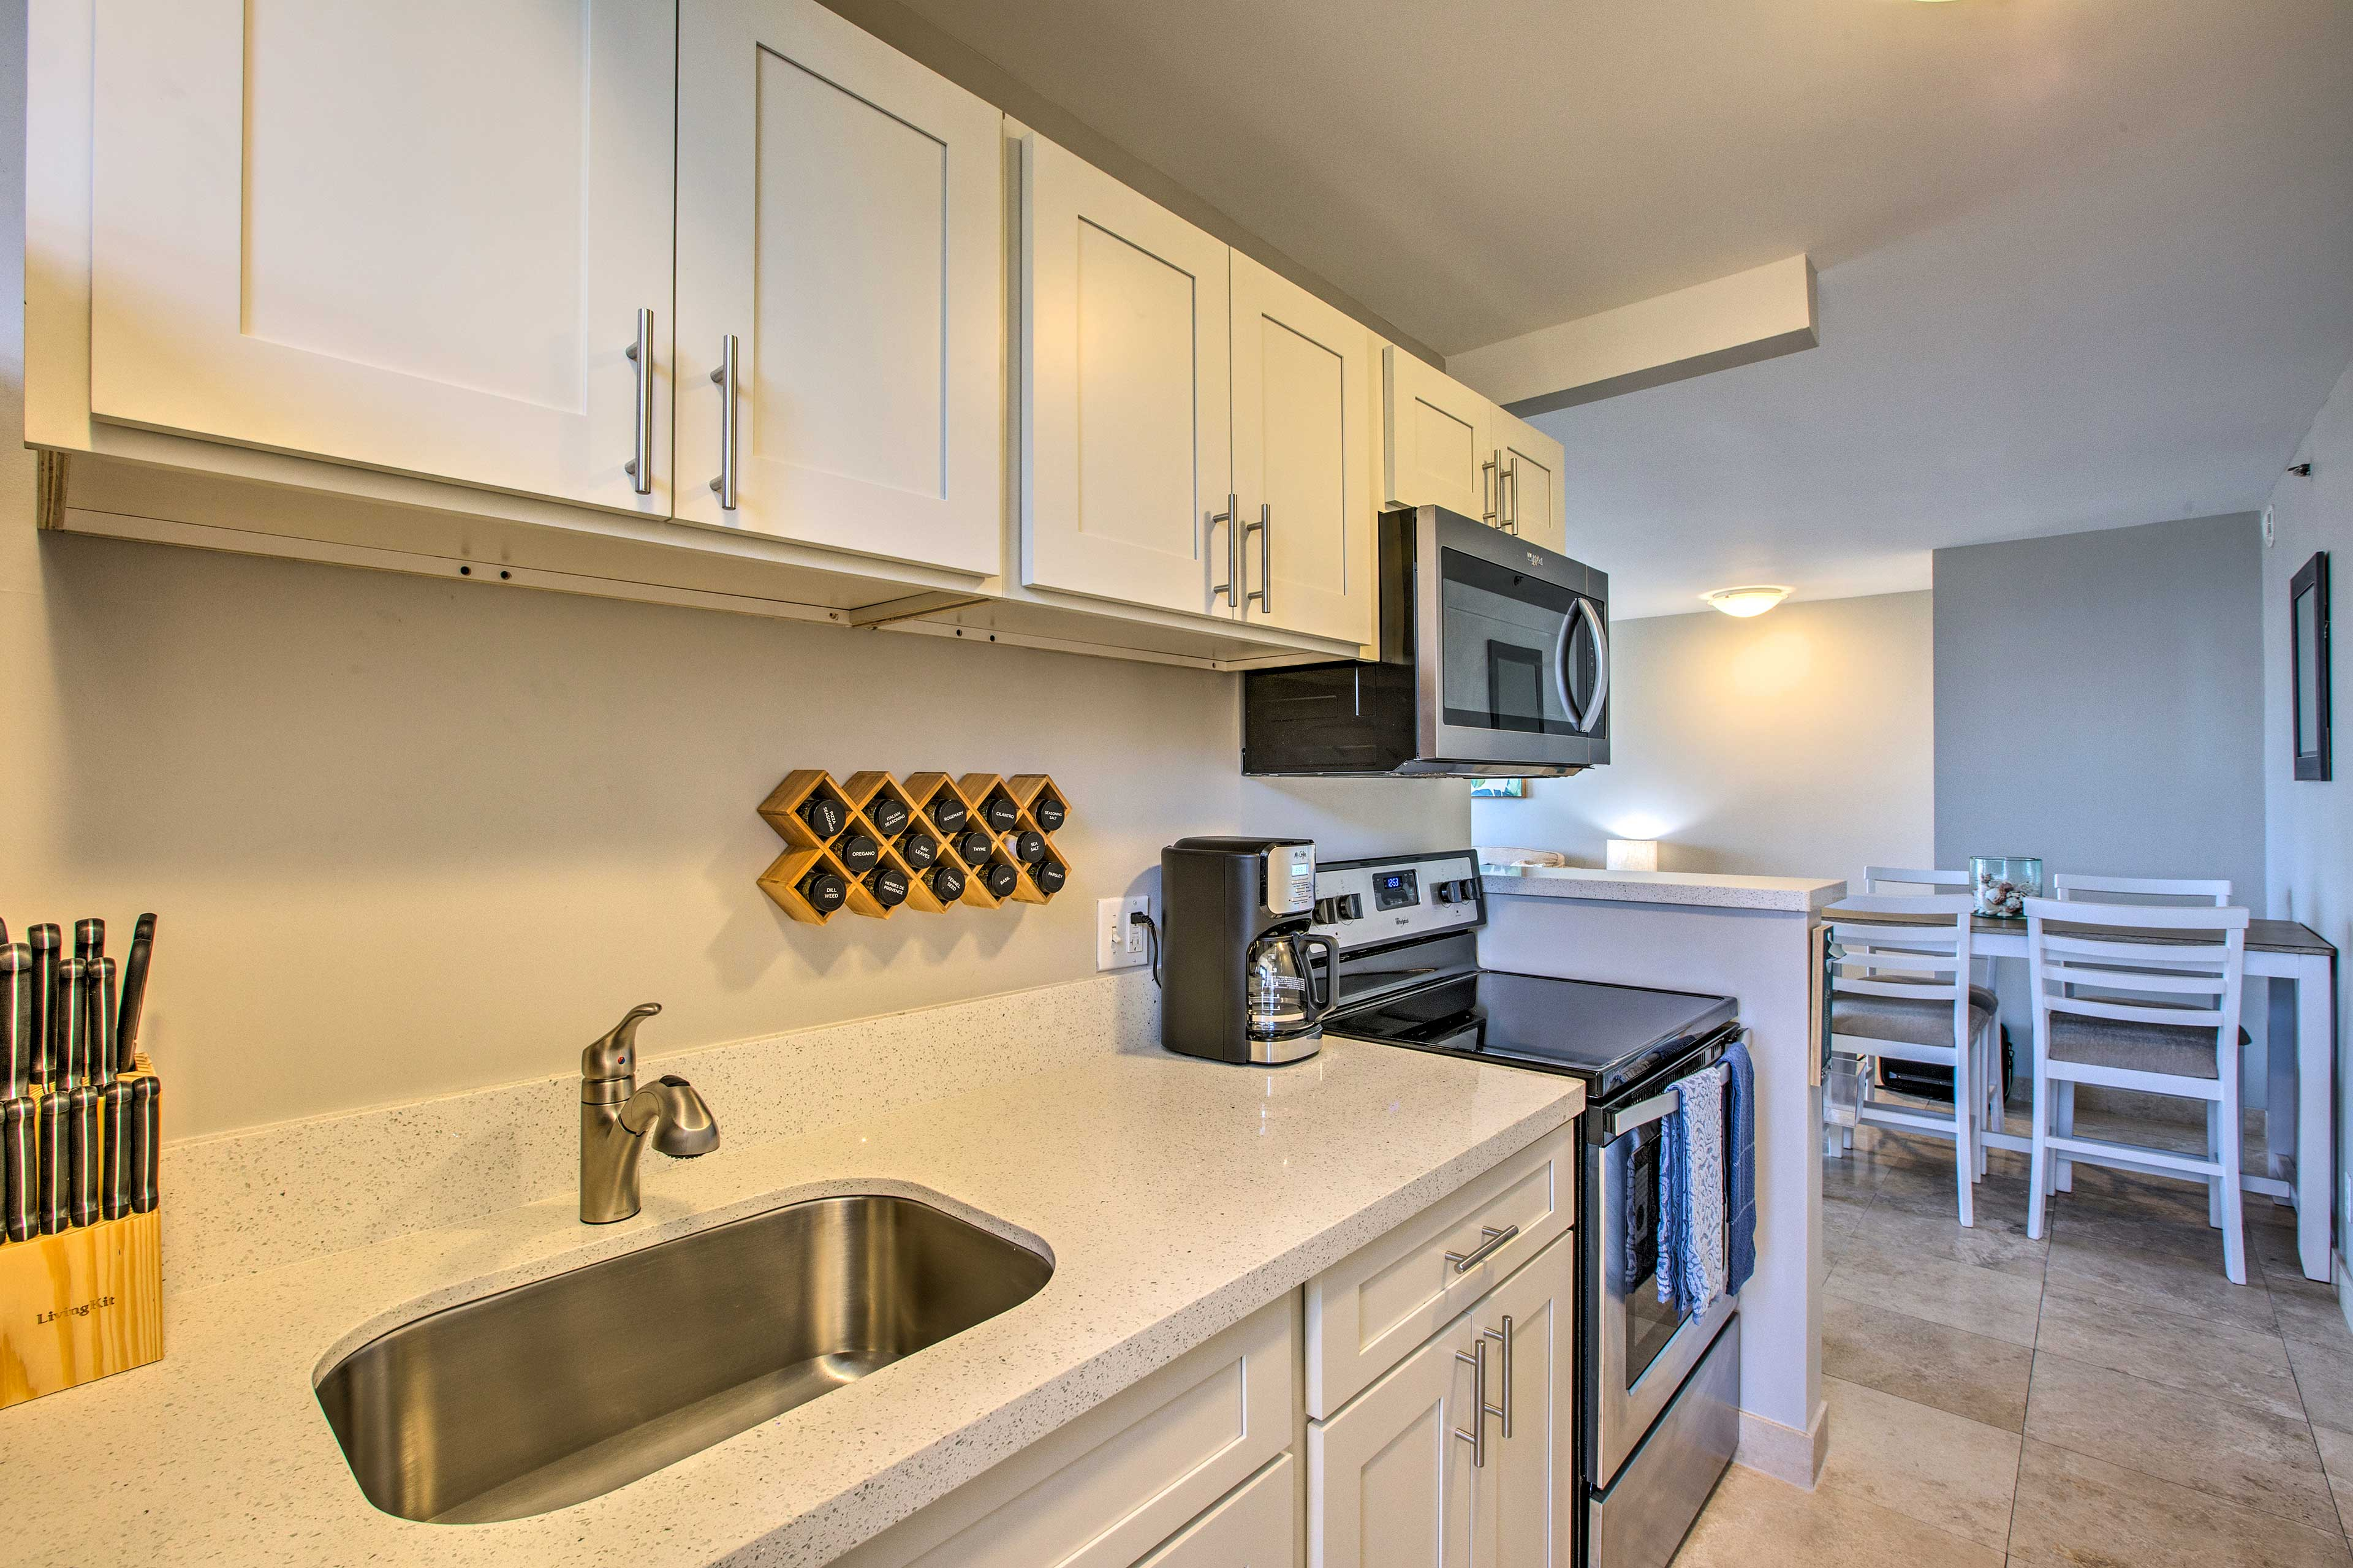 The kitchen includes stainless steel appliances.